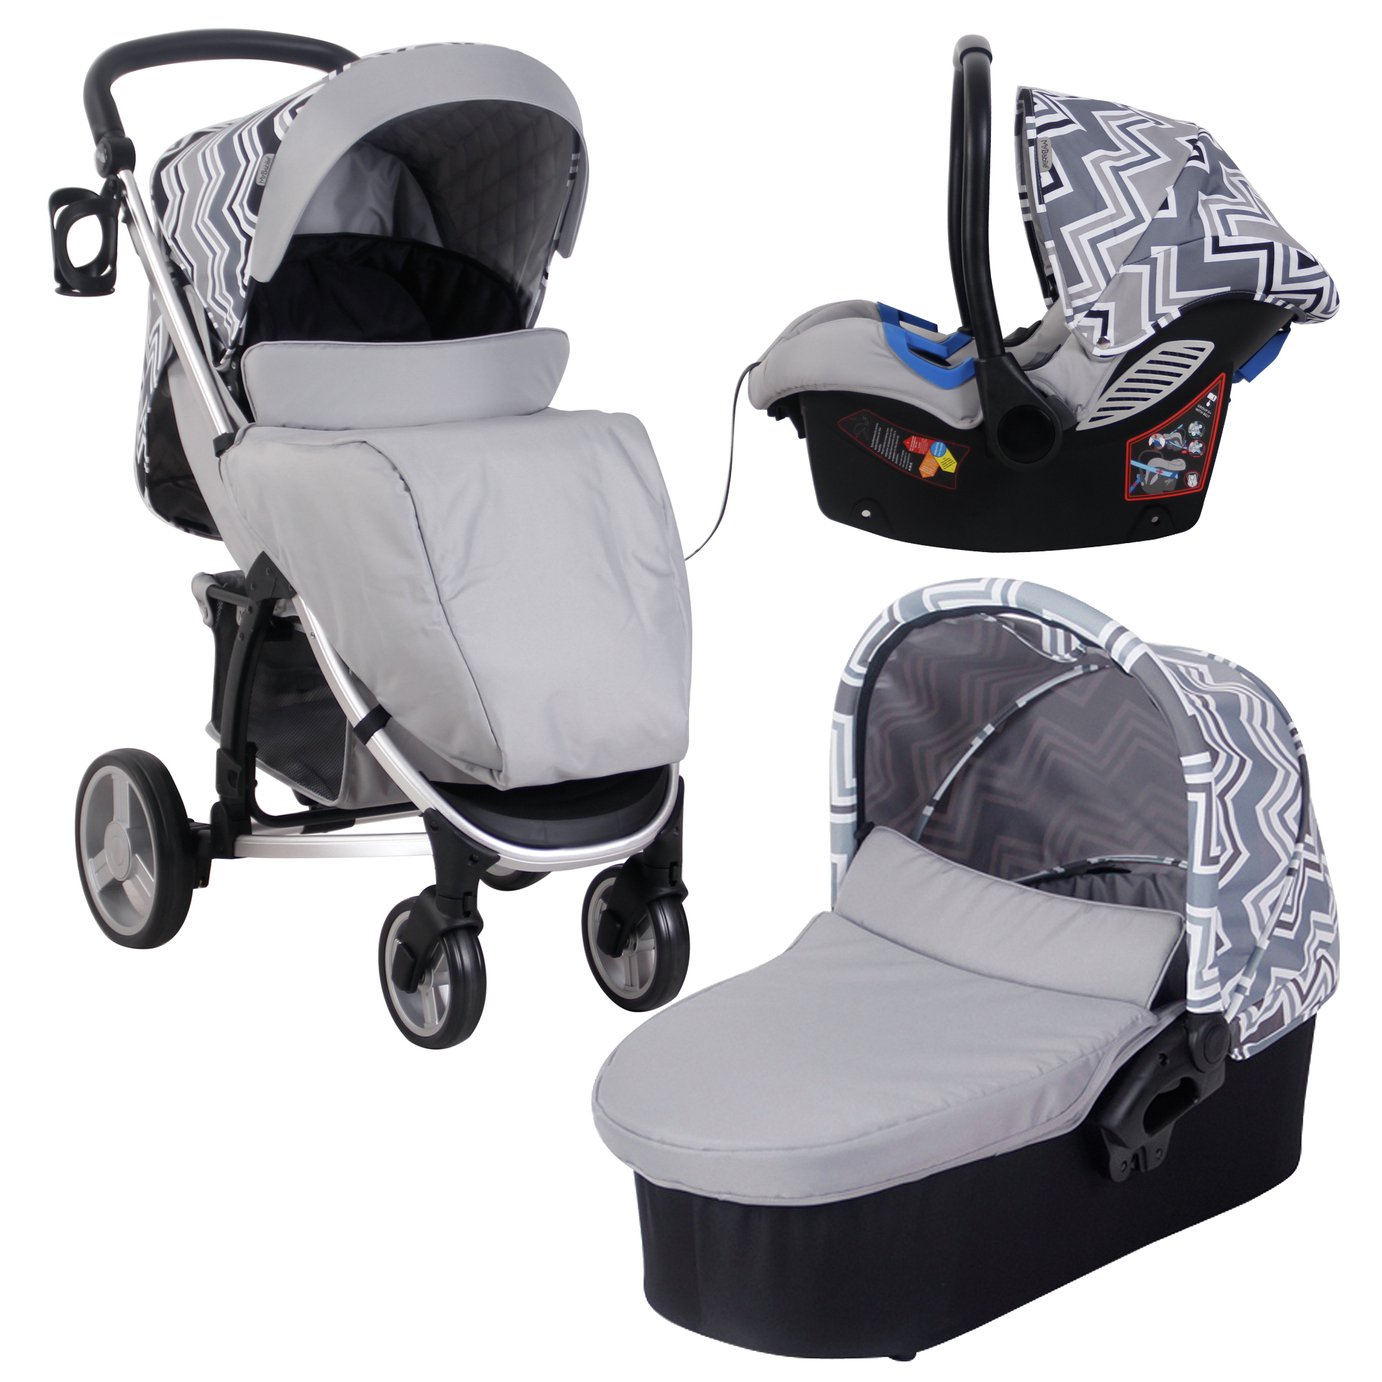 My Babiie Sam Faiers MB200 Travel System - Charcoal Chevron